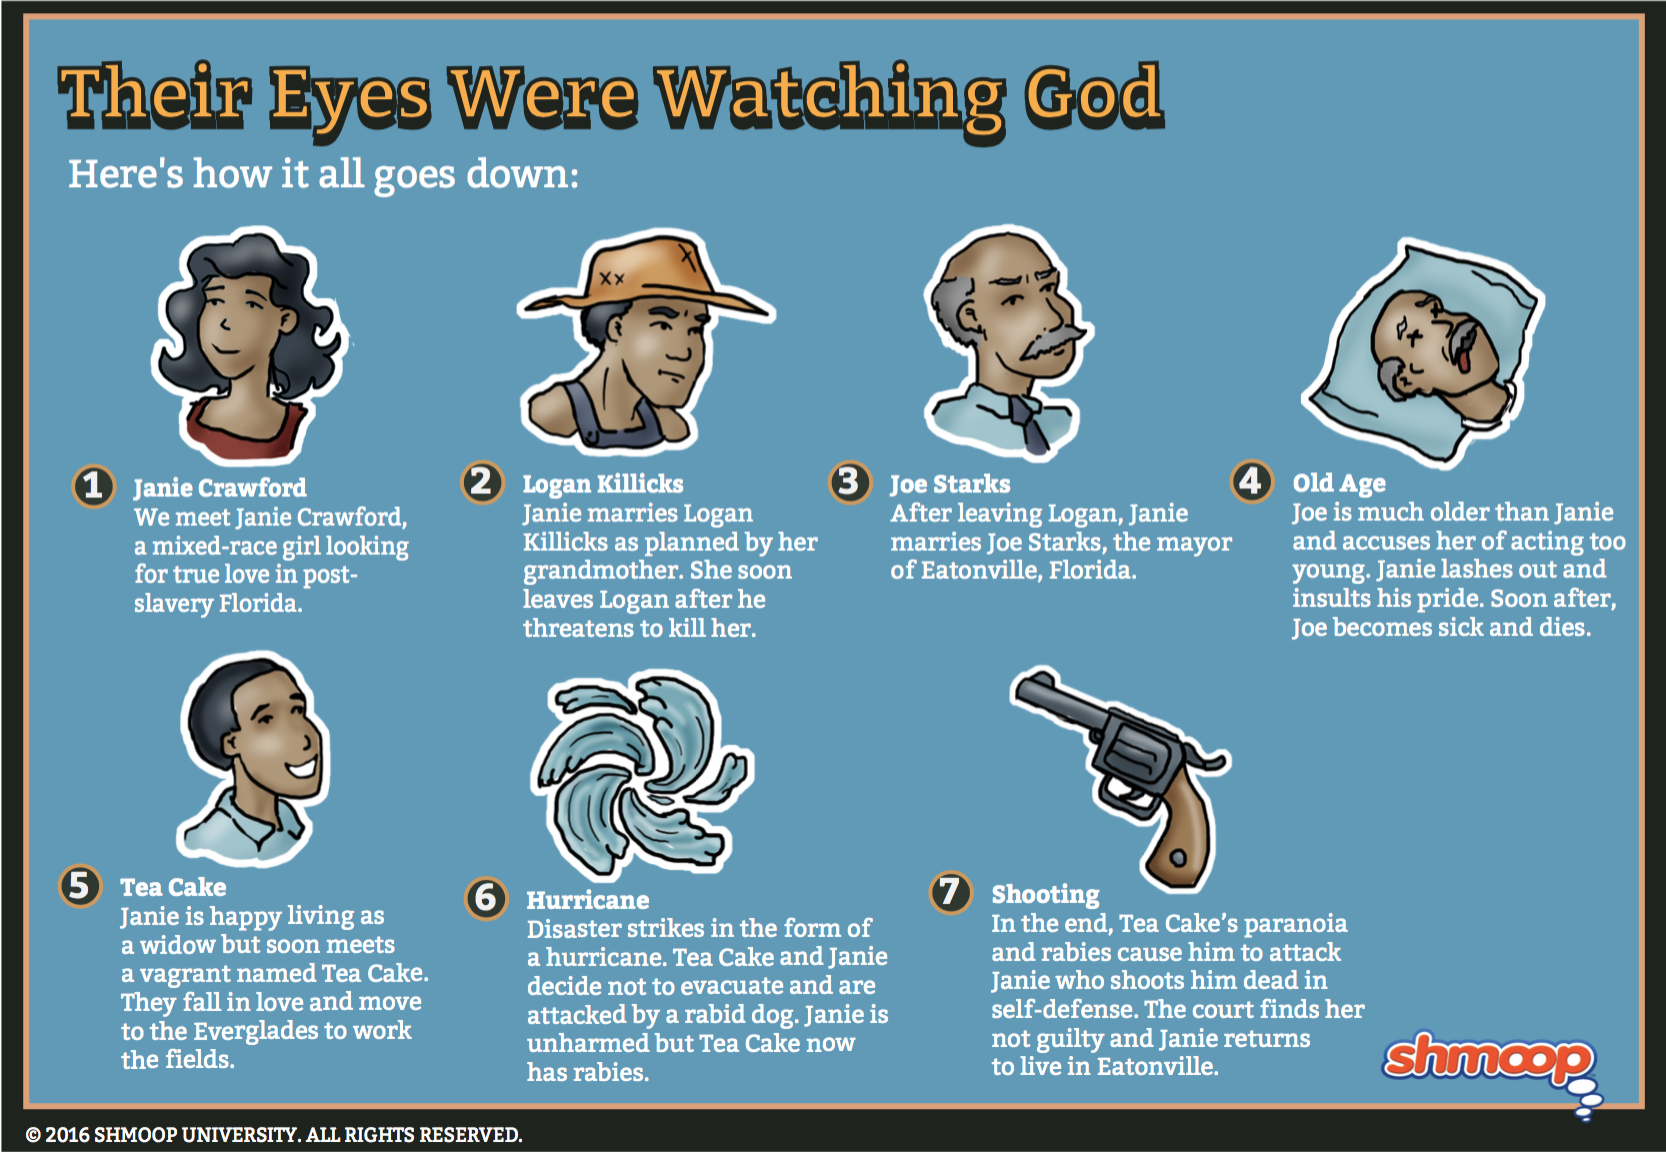 how symbolism is used in their eyes were watching god Their eyes were watching god essays zora neale hurston, the author of their eyes were watching god, uses symbolism and metaphors, also known as motifs, frequently throughout the novel motifs are unifying ideas that are recurrent elements in a literary work, and are used in this novel for numer.